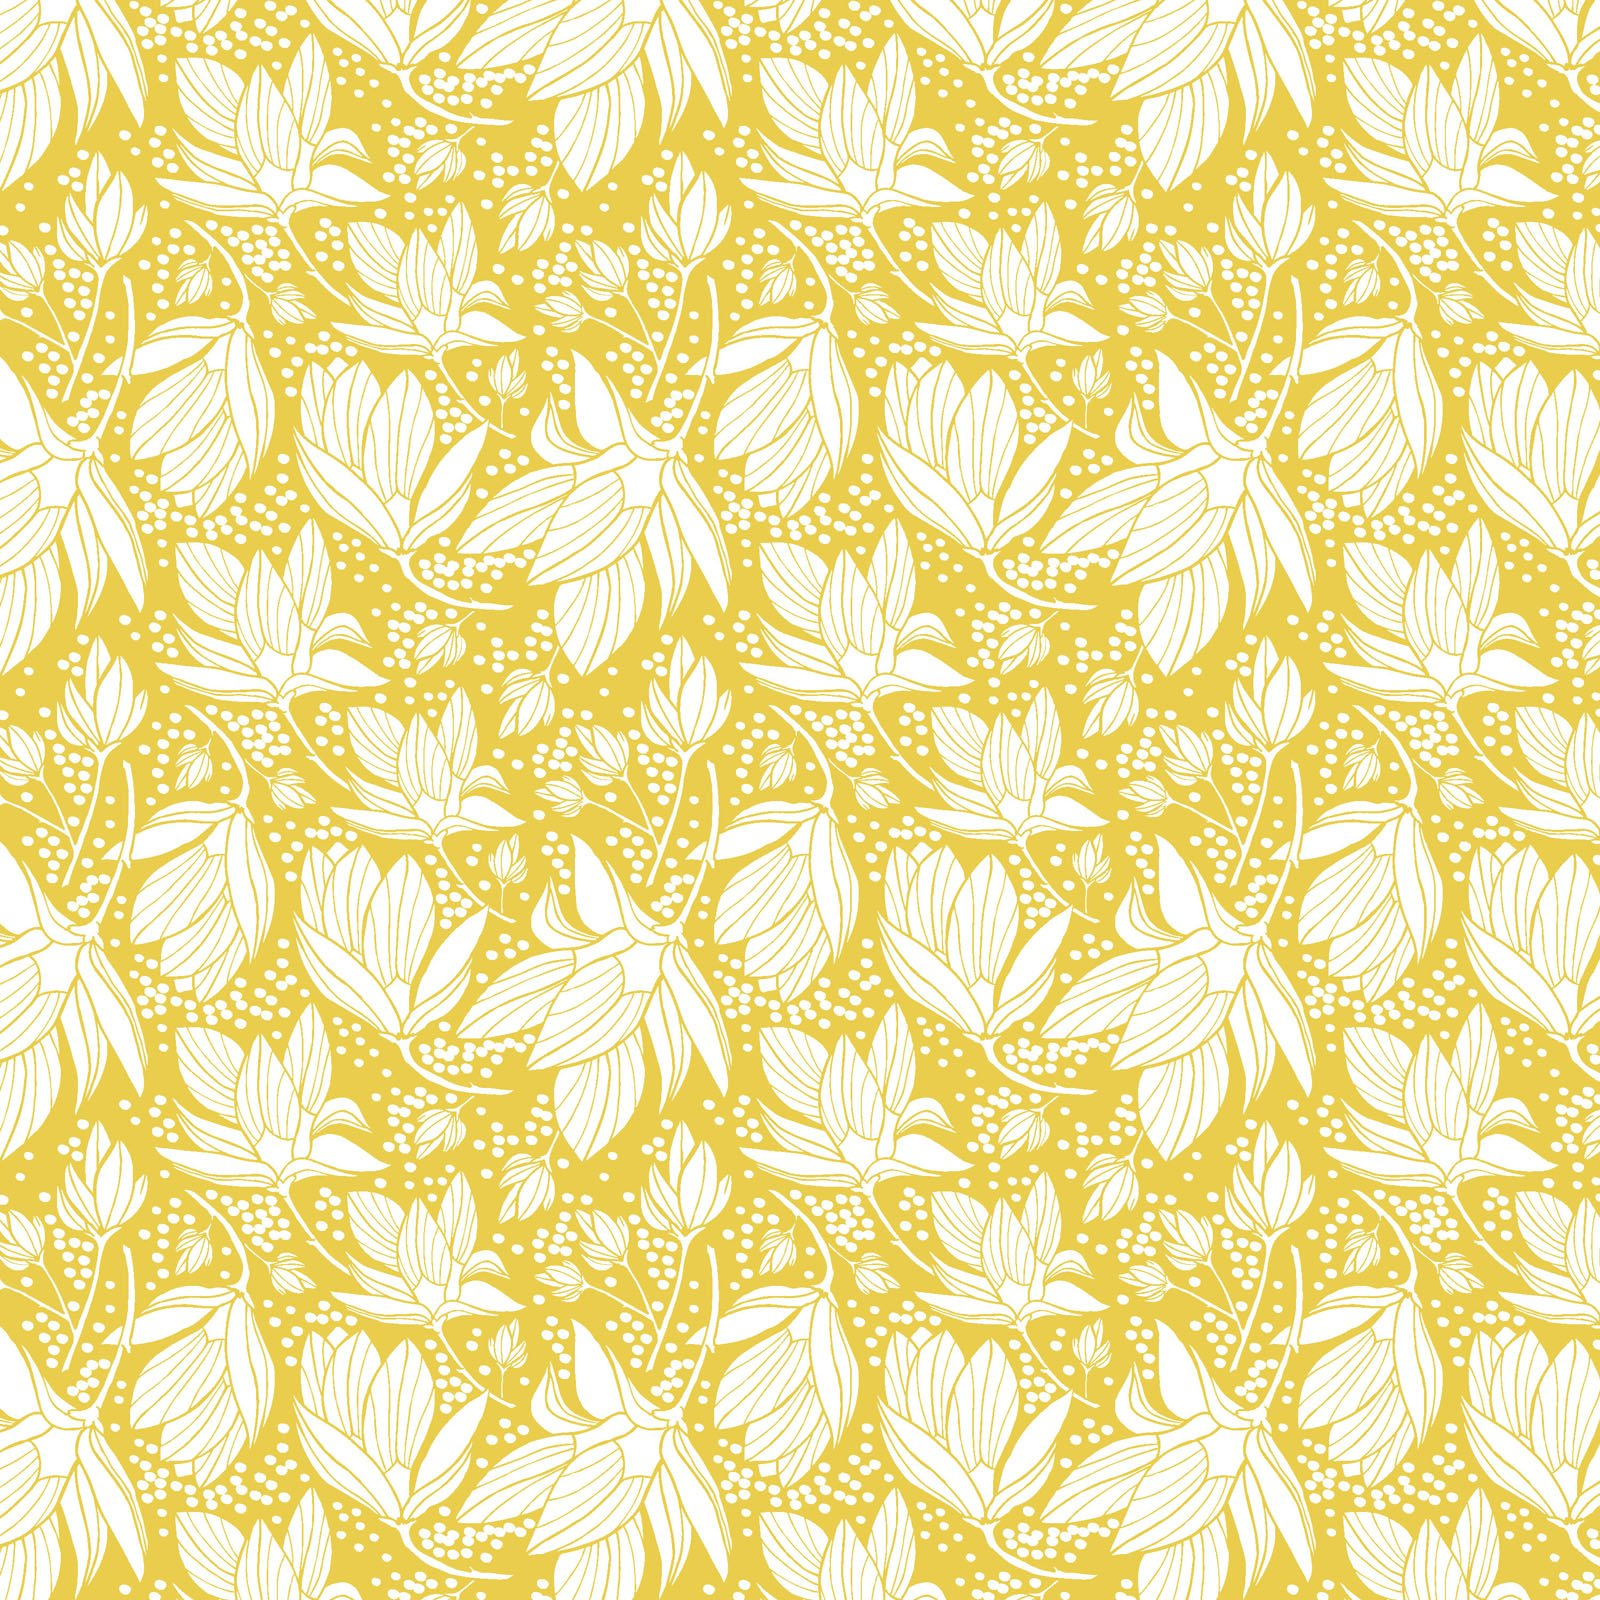 SOUH-4424 Y - SOUTHERN HOSPITALITY BY HANG TIGHT STUDIO MAGNOLIA SHOWER YELLOW - AVAILABLE TO ORDER